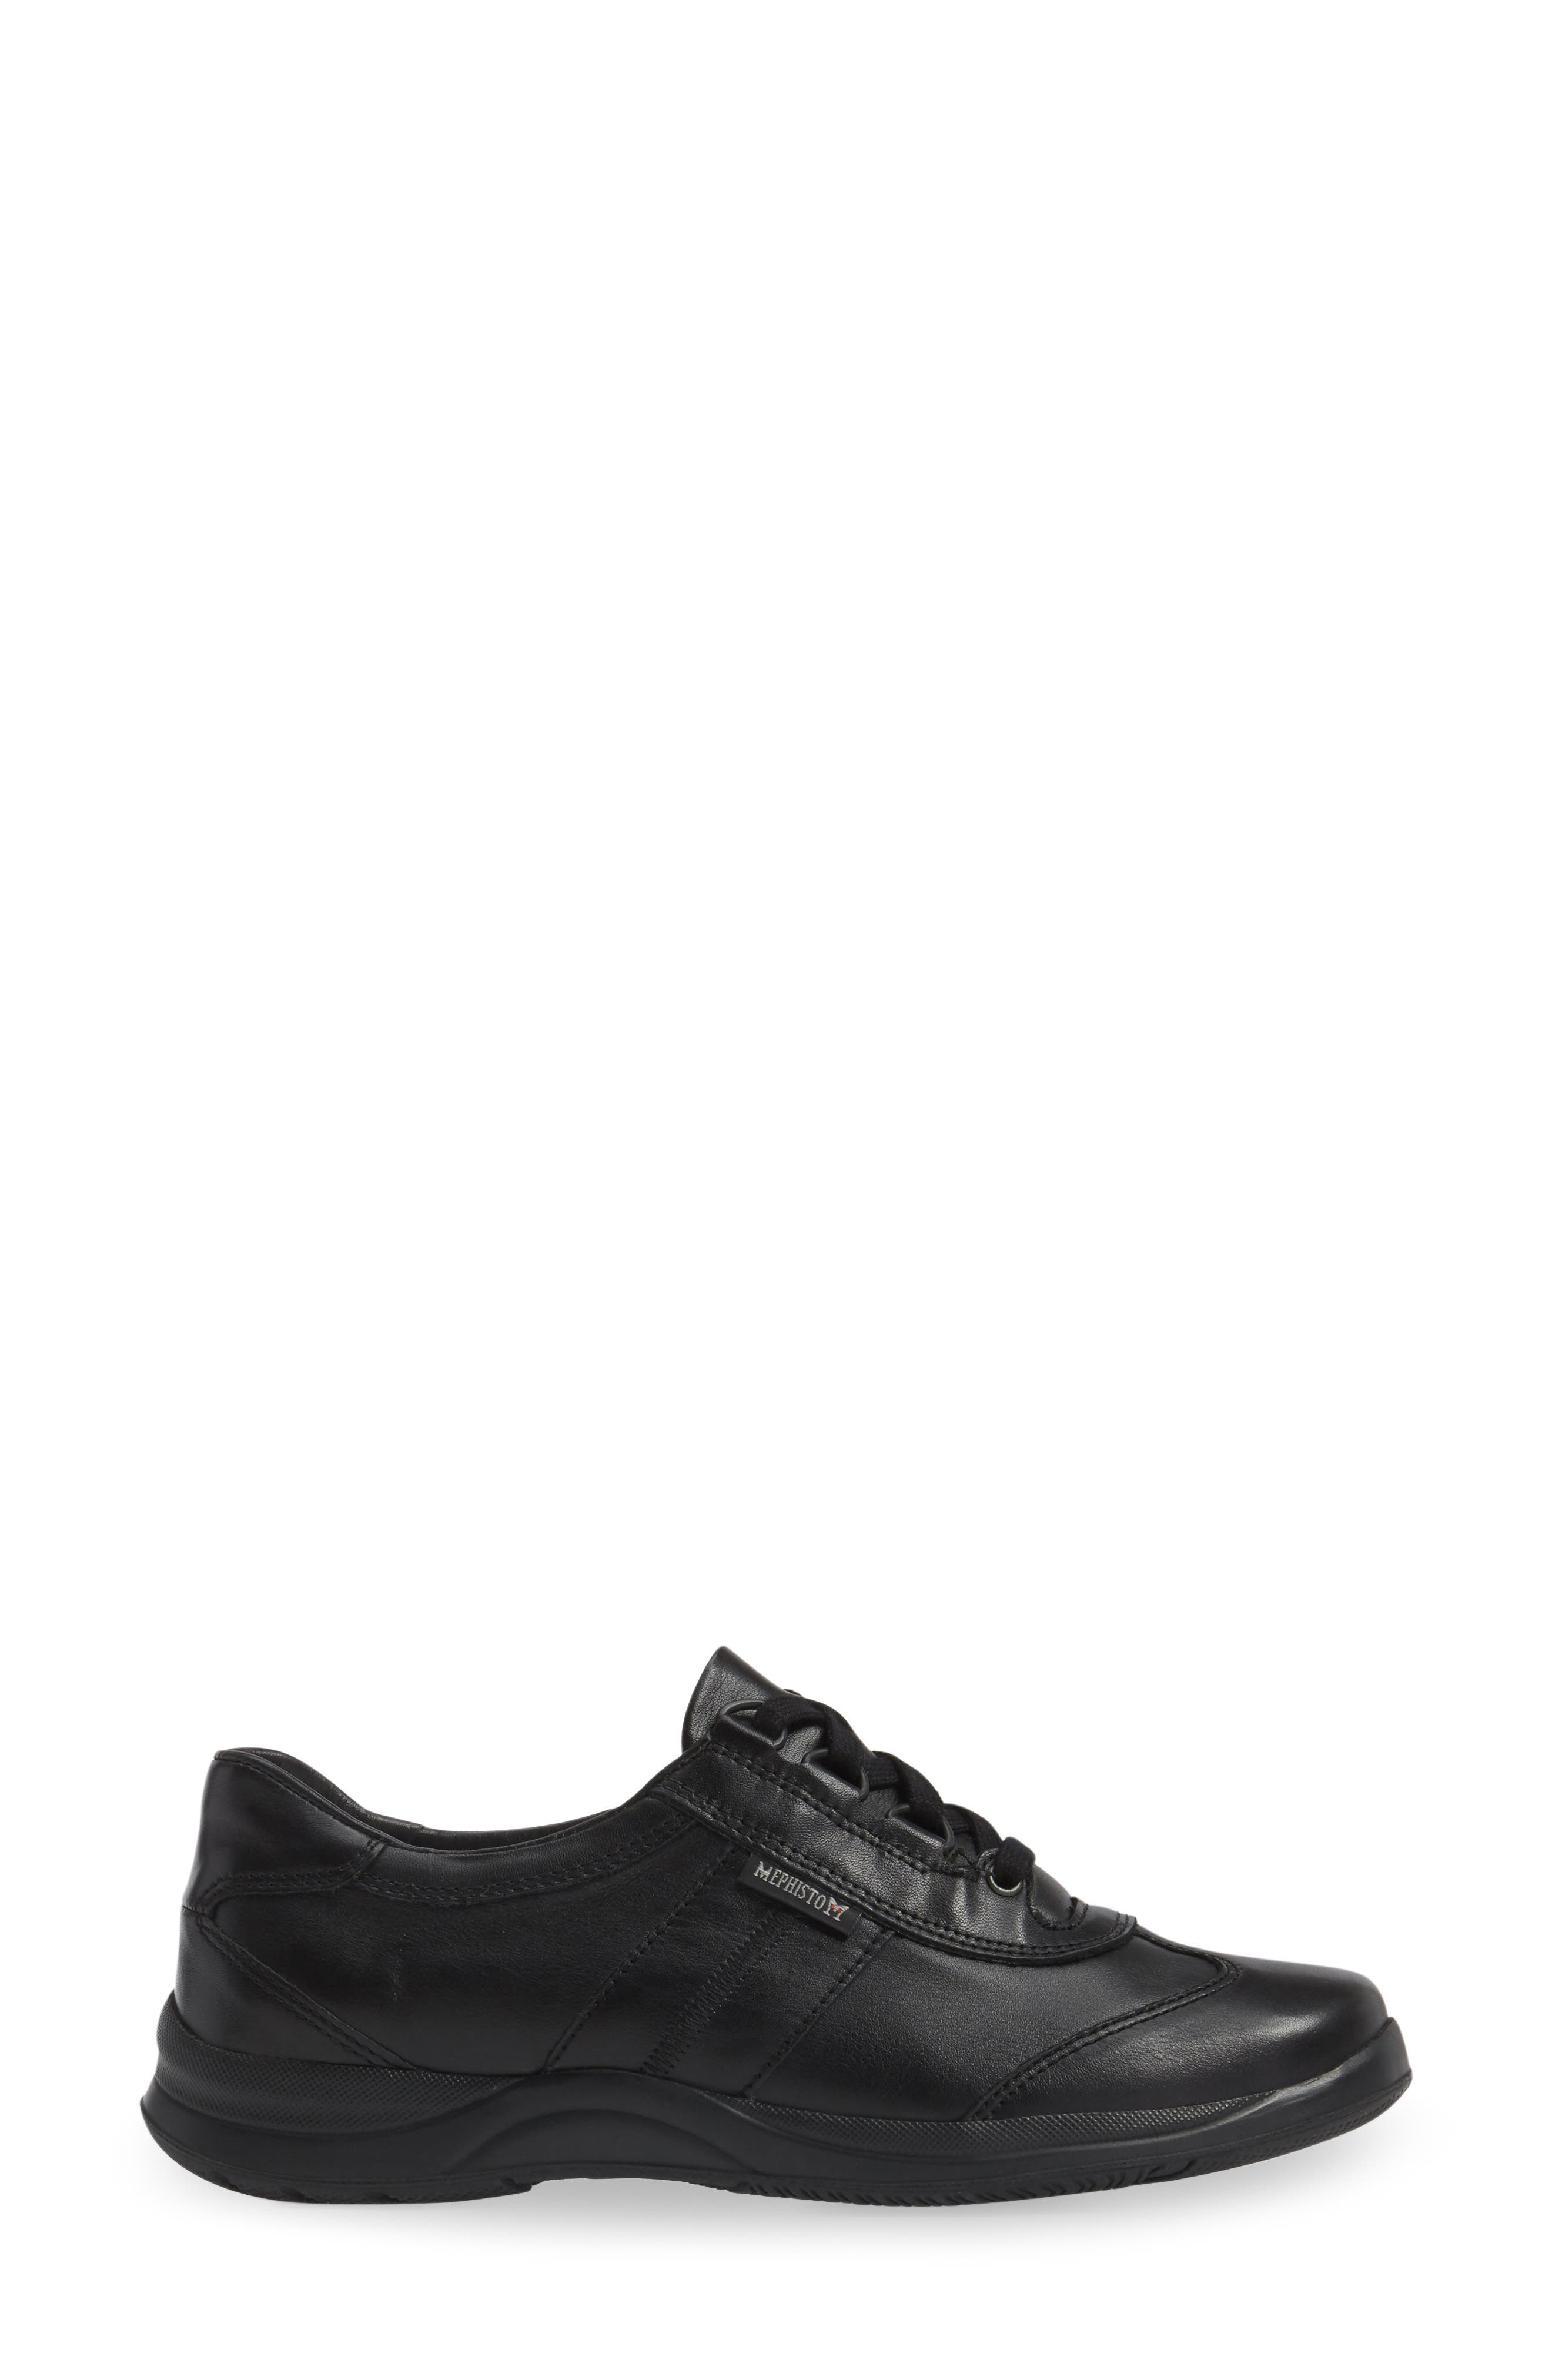 Alternate Image 3  - Mephisto 'Laser' Walking Shoe (Women)